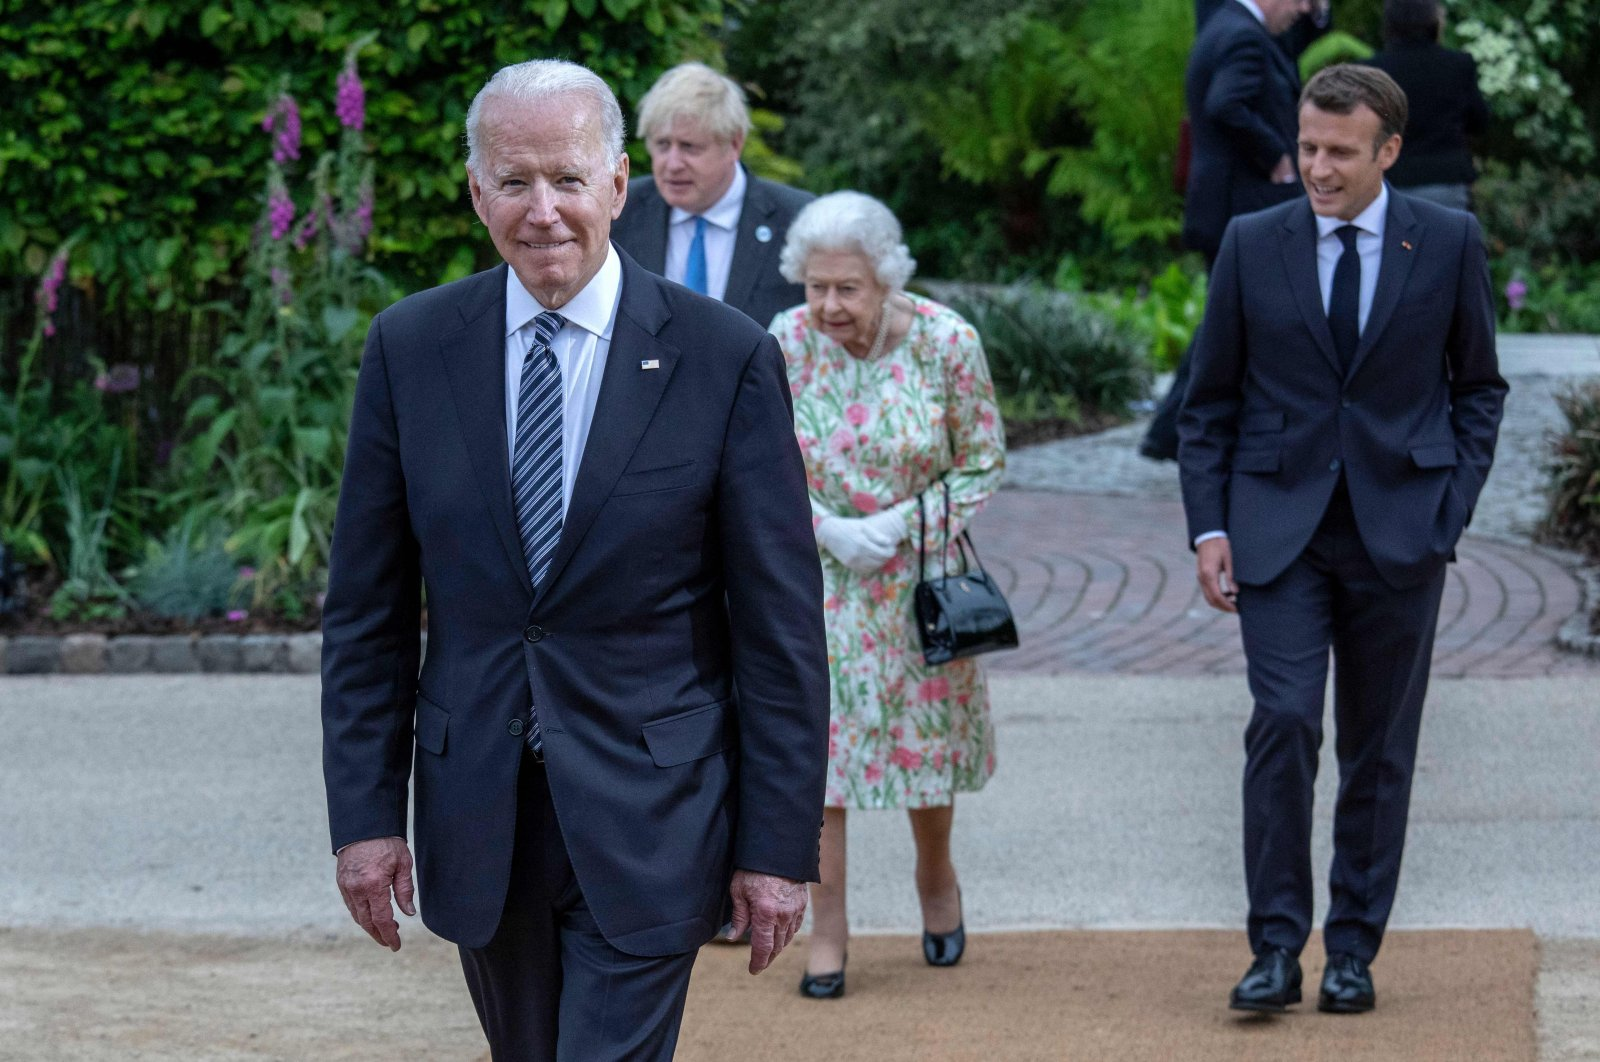 U.S. President Joe Biden (L), British Prime Minister Boris Johnson (2nd L), Britain's Queen Elizabeth II (C) and French President Emmanuel Macron arrive for a family photograph during a reception at The Eden Project in Cornwall, Britain, June 11, 2021. (AFP Photo)